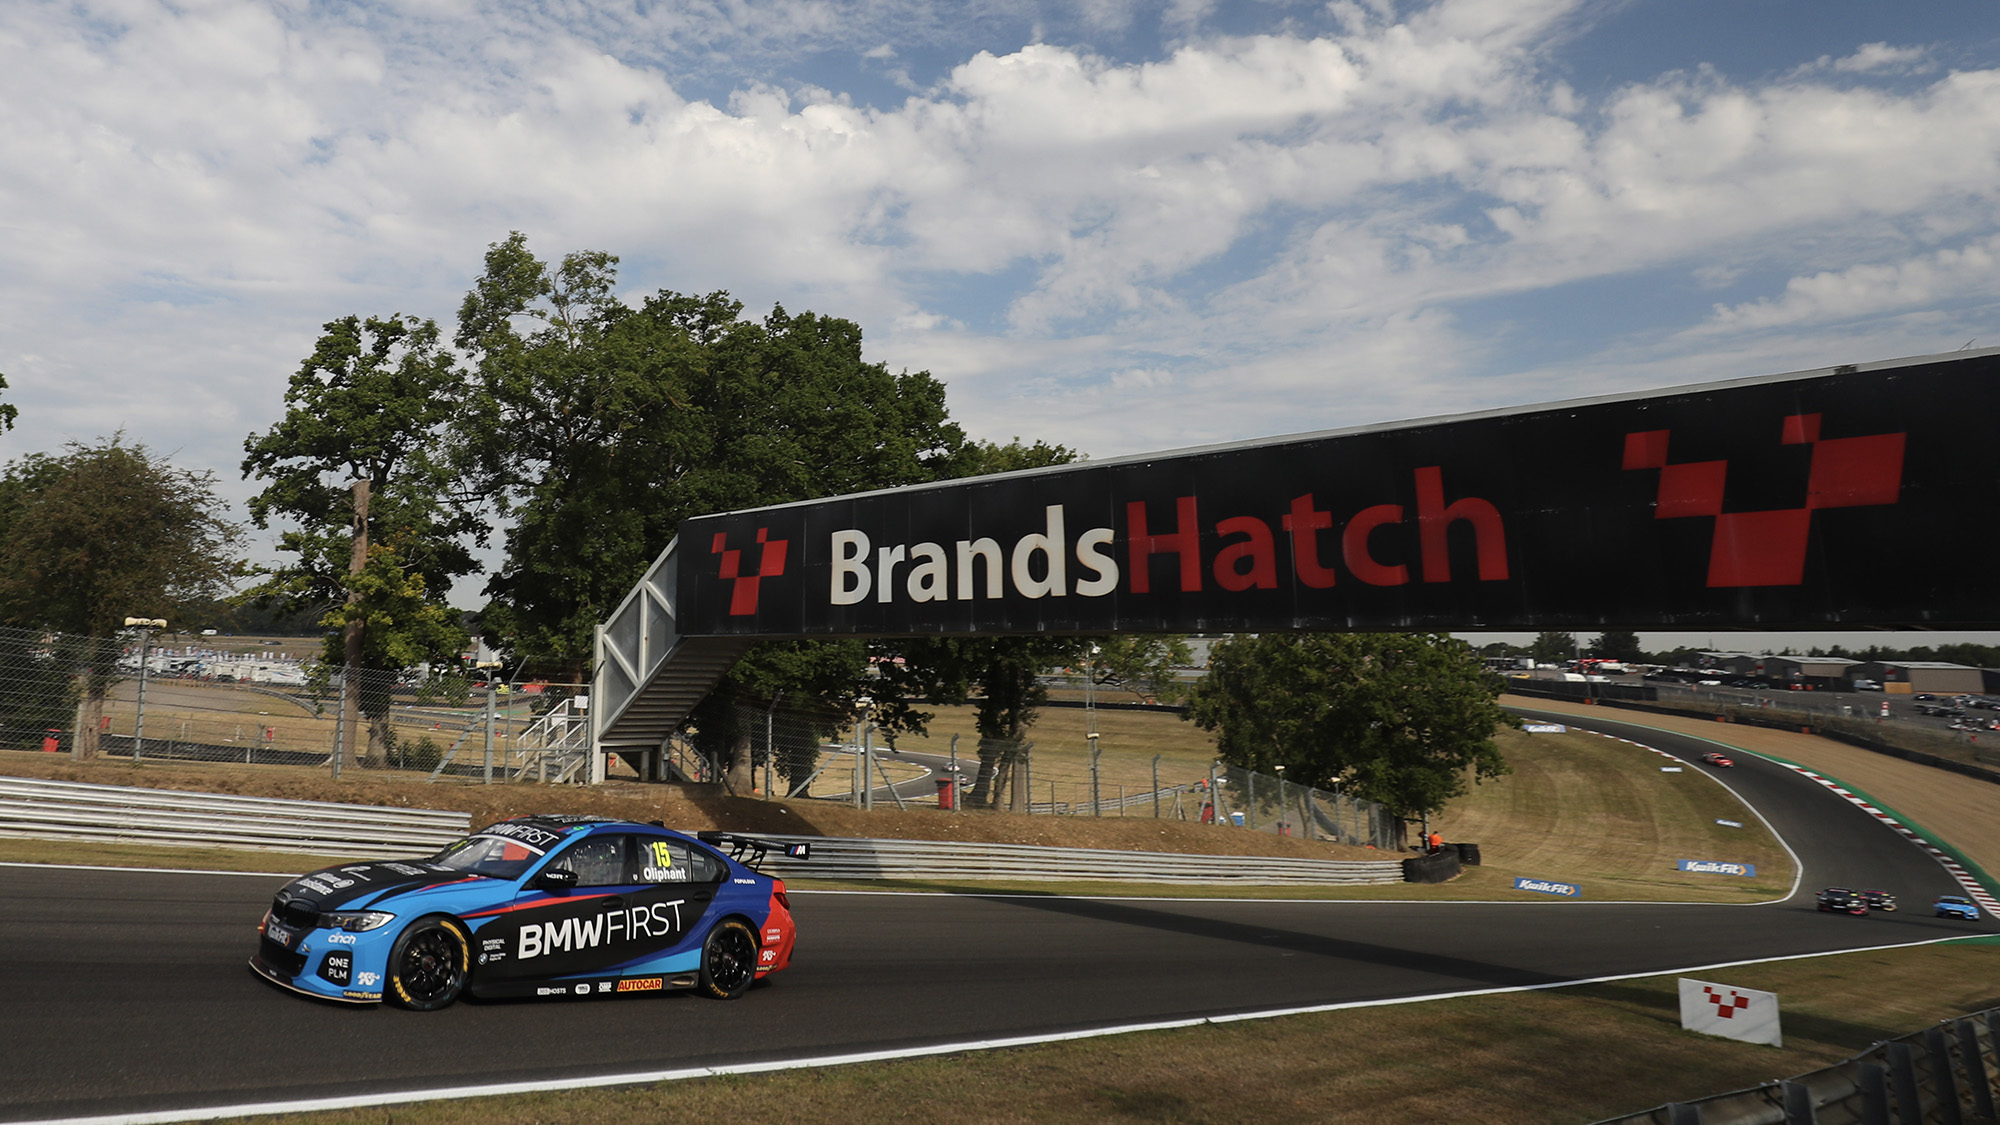 Tom Oliphant during the 2020 Brands Hatch GP BTCC meeting